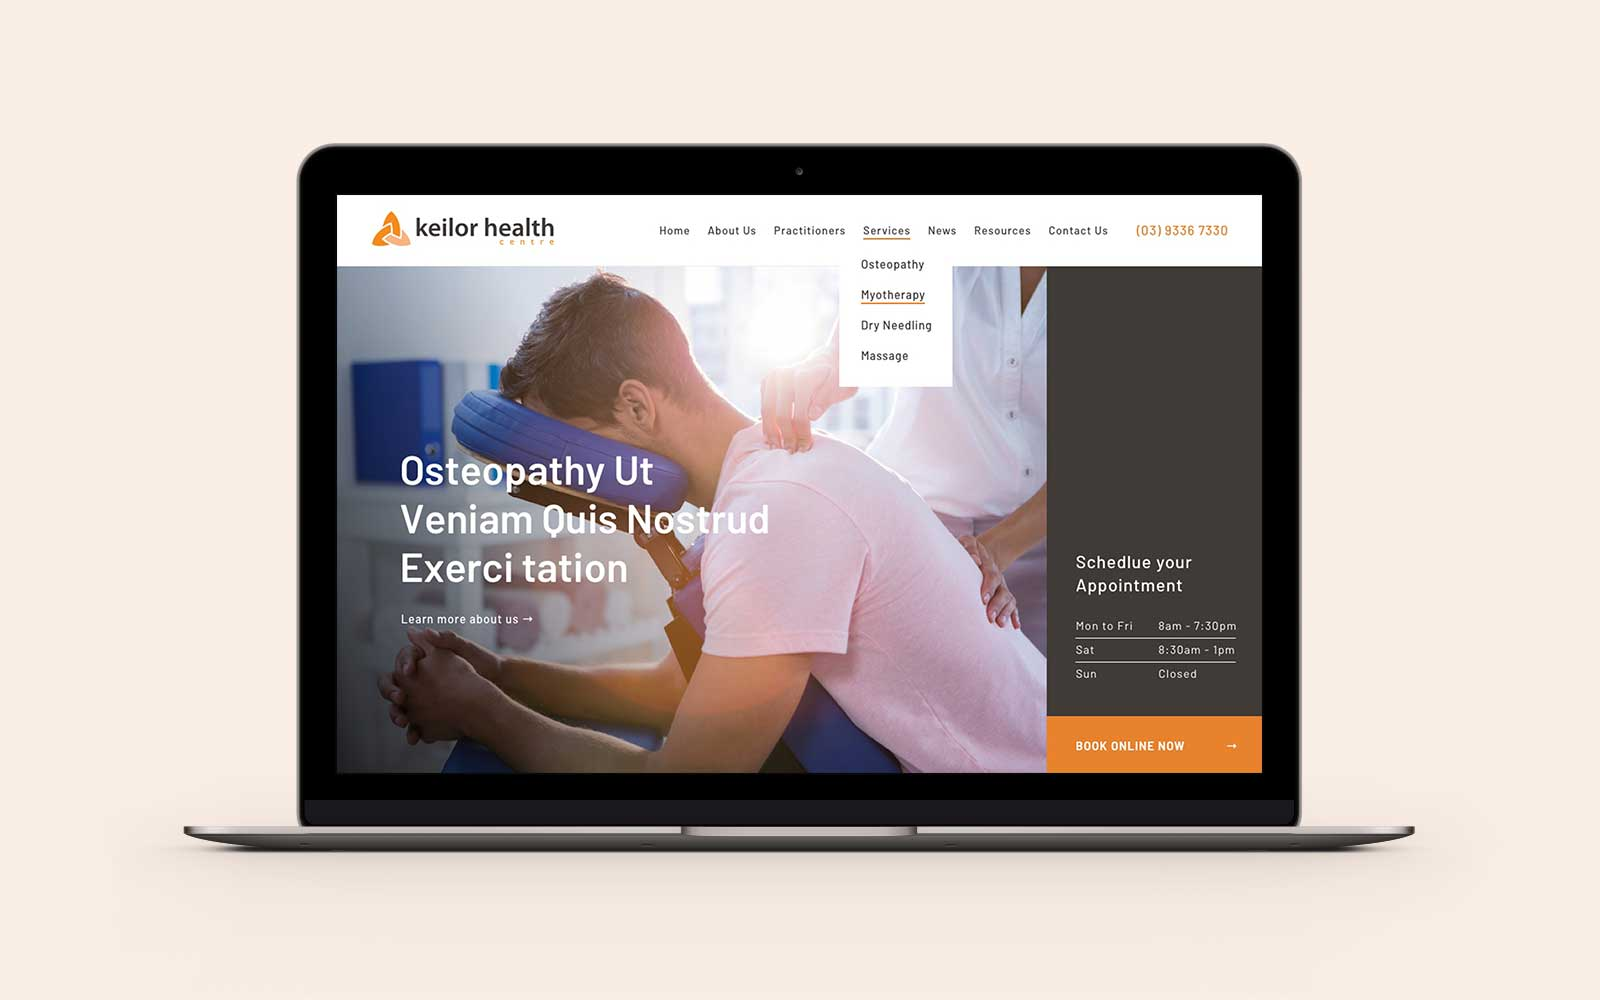 Keilor Health homepage desktop design on Macbook